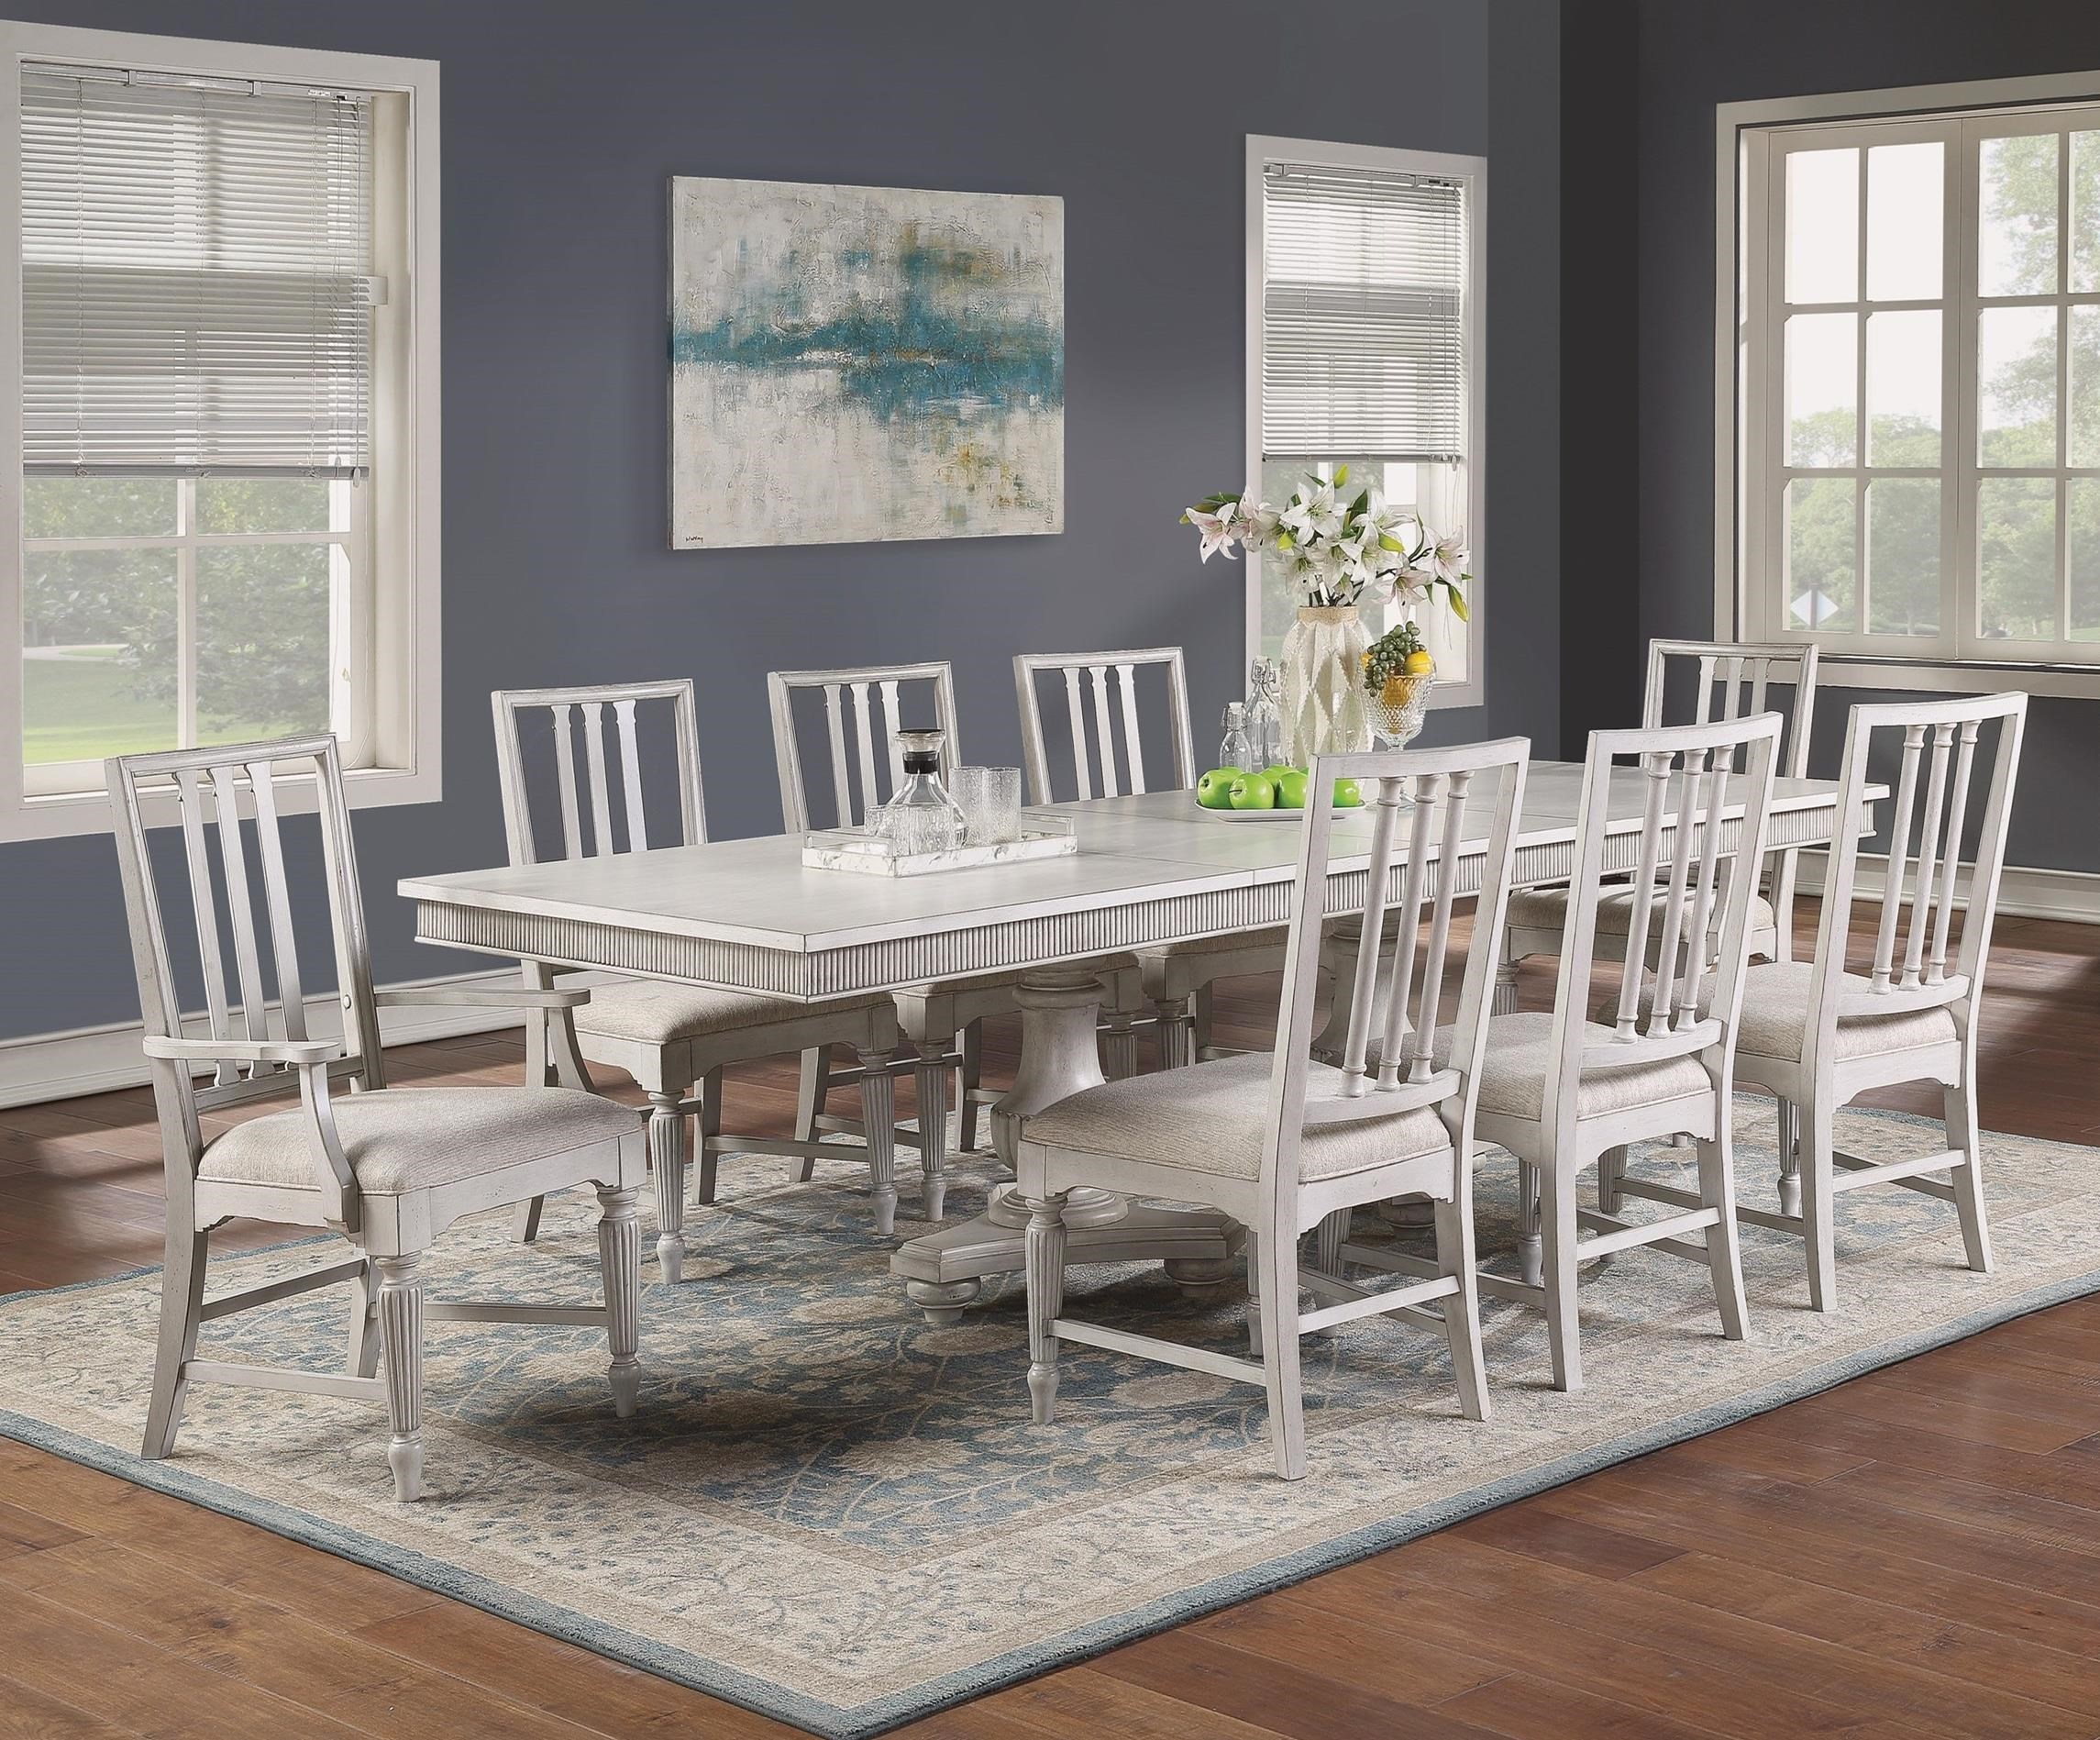 Flexsteel Wynwood Collection Harmony 7 Piece Cottage Dining Table Set With Arm Chairs Sheely S Furniture Appliance Dining 7 Or More Piece Sets